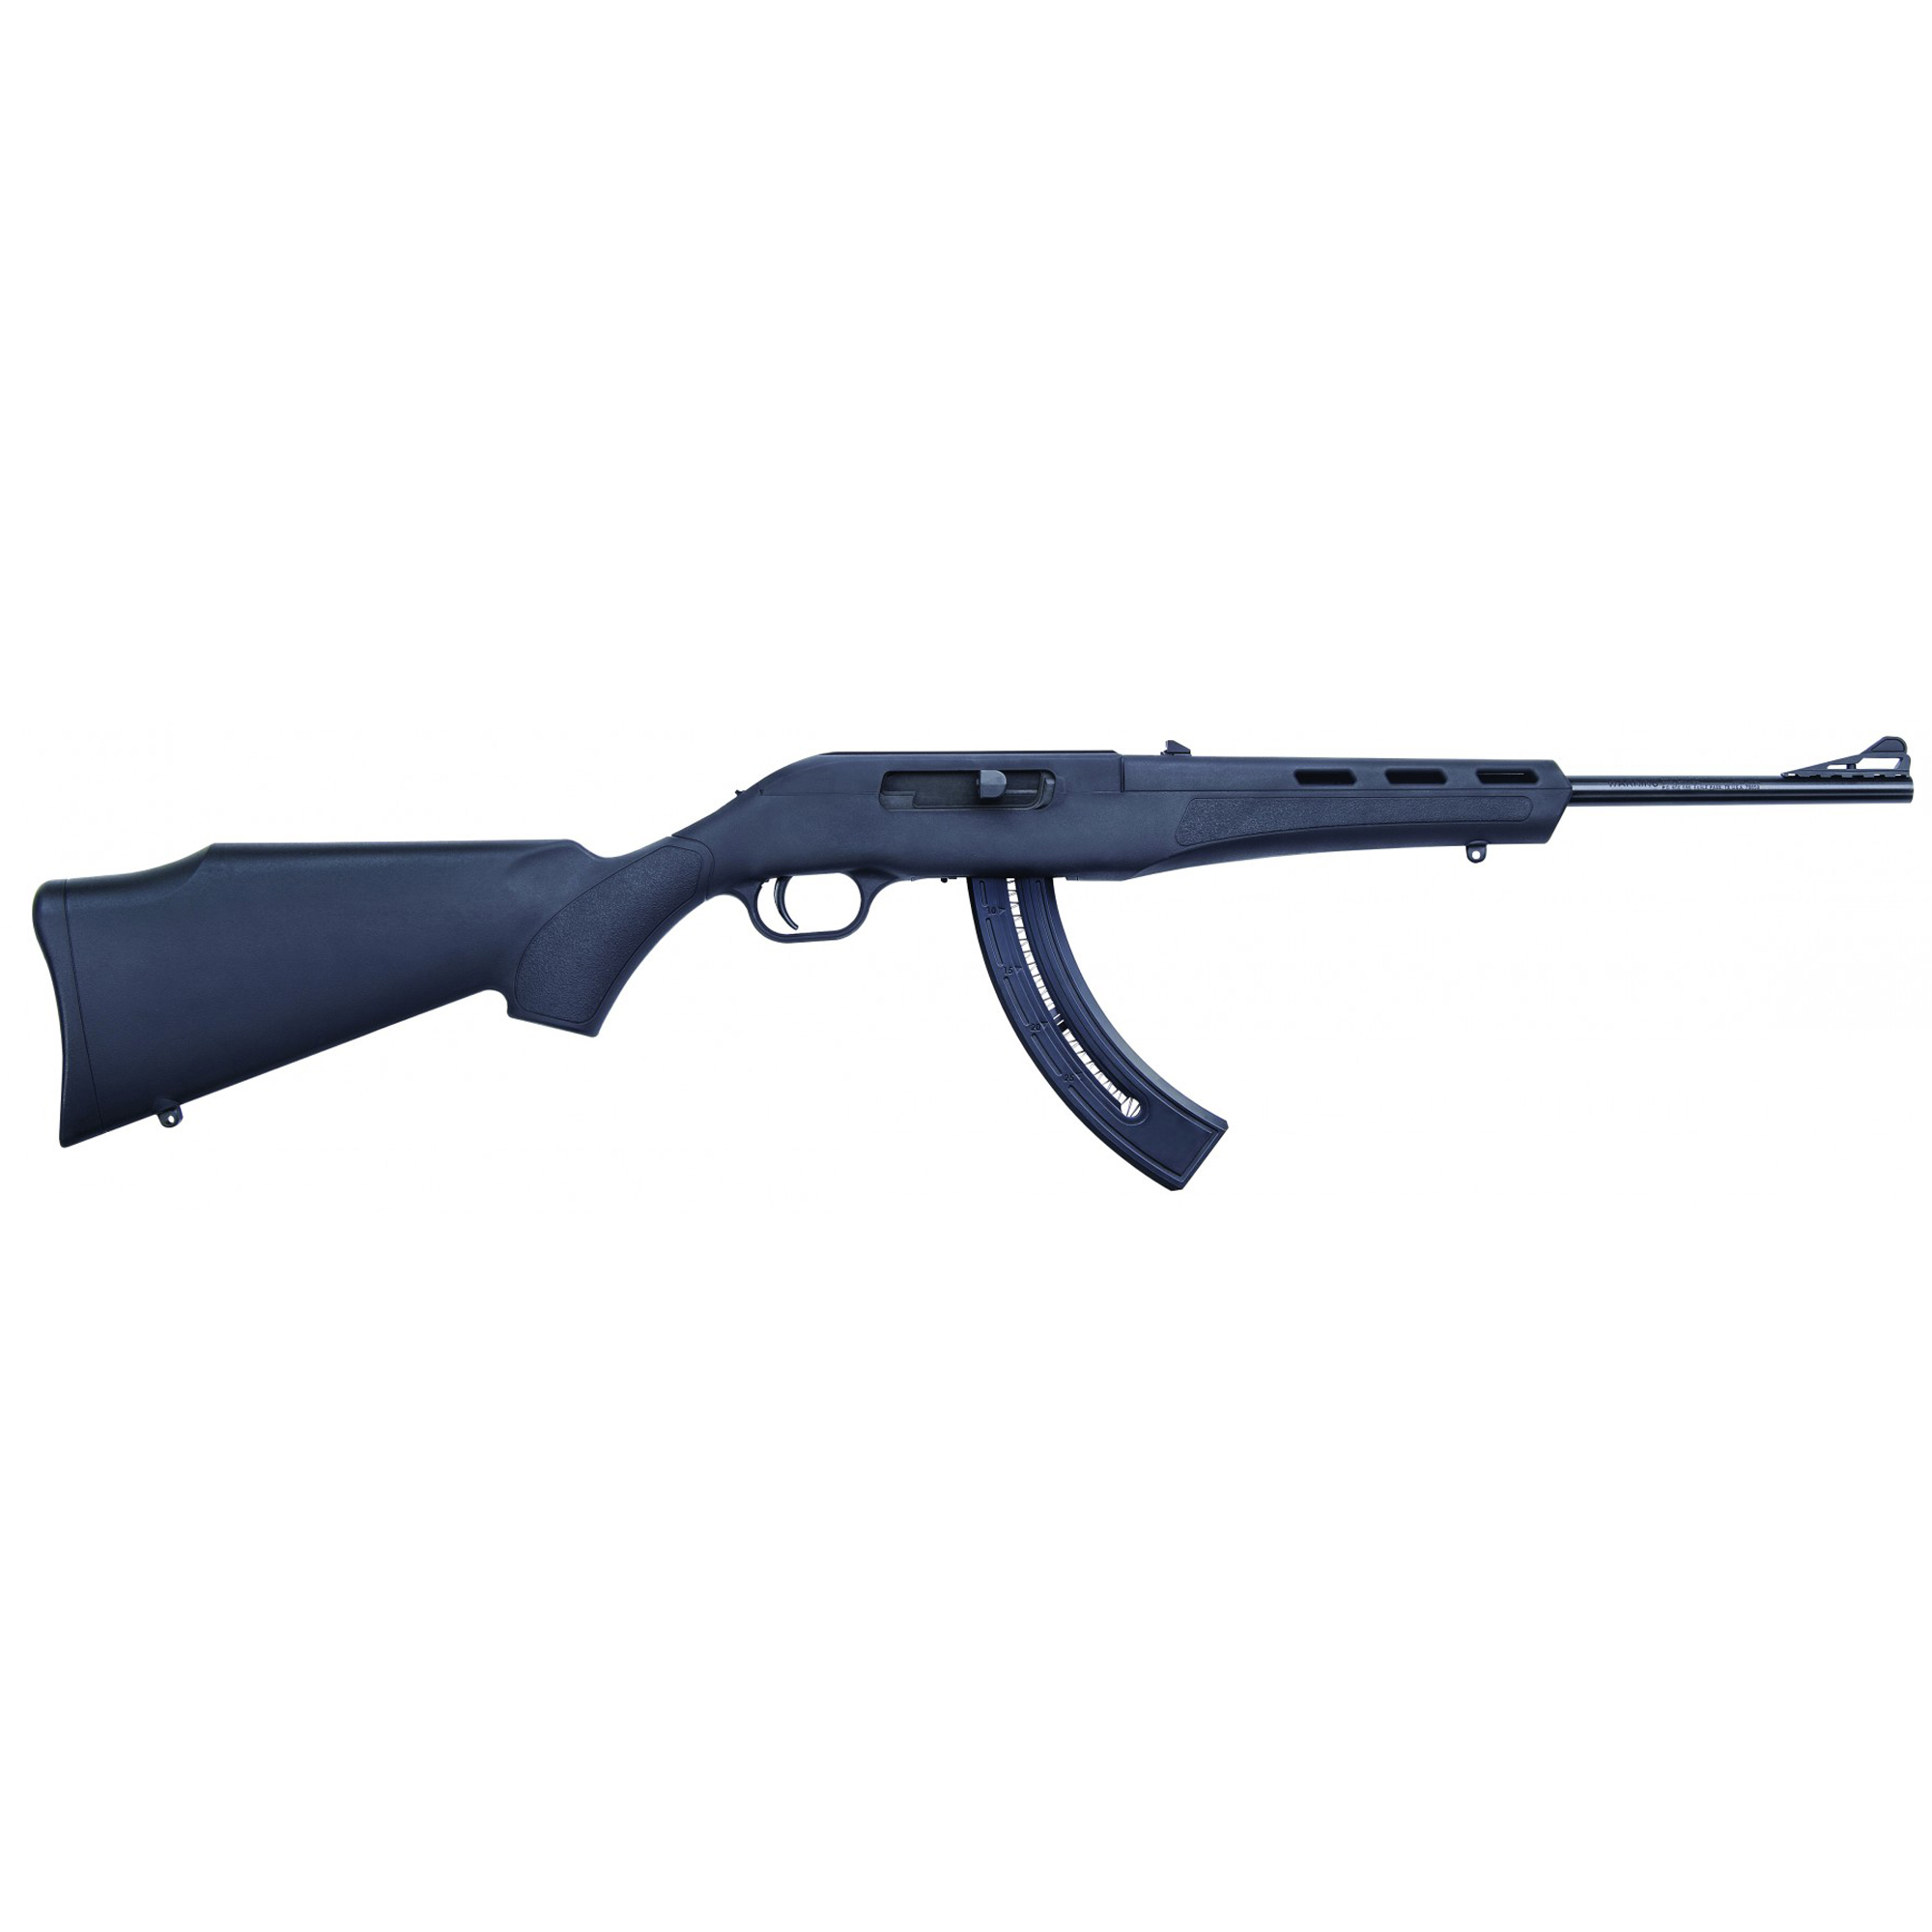 """The Mossberg Blaze(TM) is an innovative polymer rifle that's lightweight"""" rugged"""" easy to handle"""" and sure to be a fast favorite for plinkers. Adjustable fiber optic sights and a 25 round magazine add to the value of this affordable rimfire."""